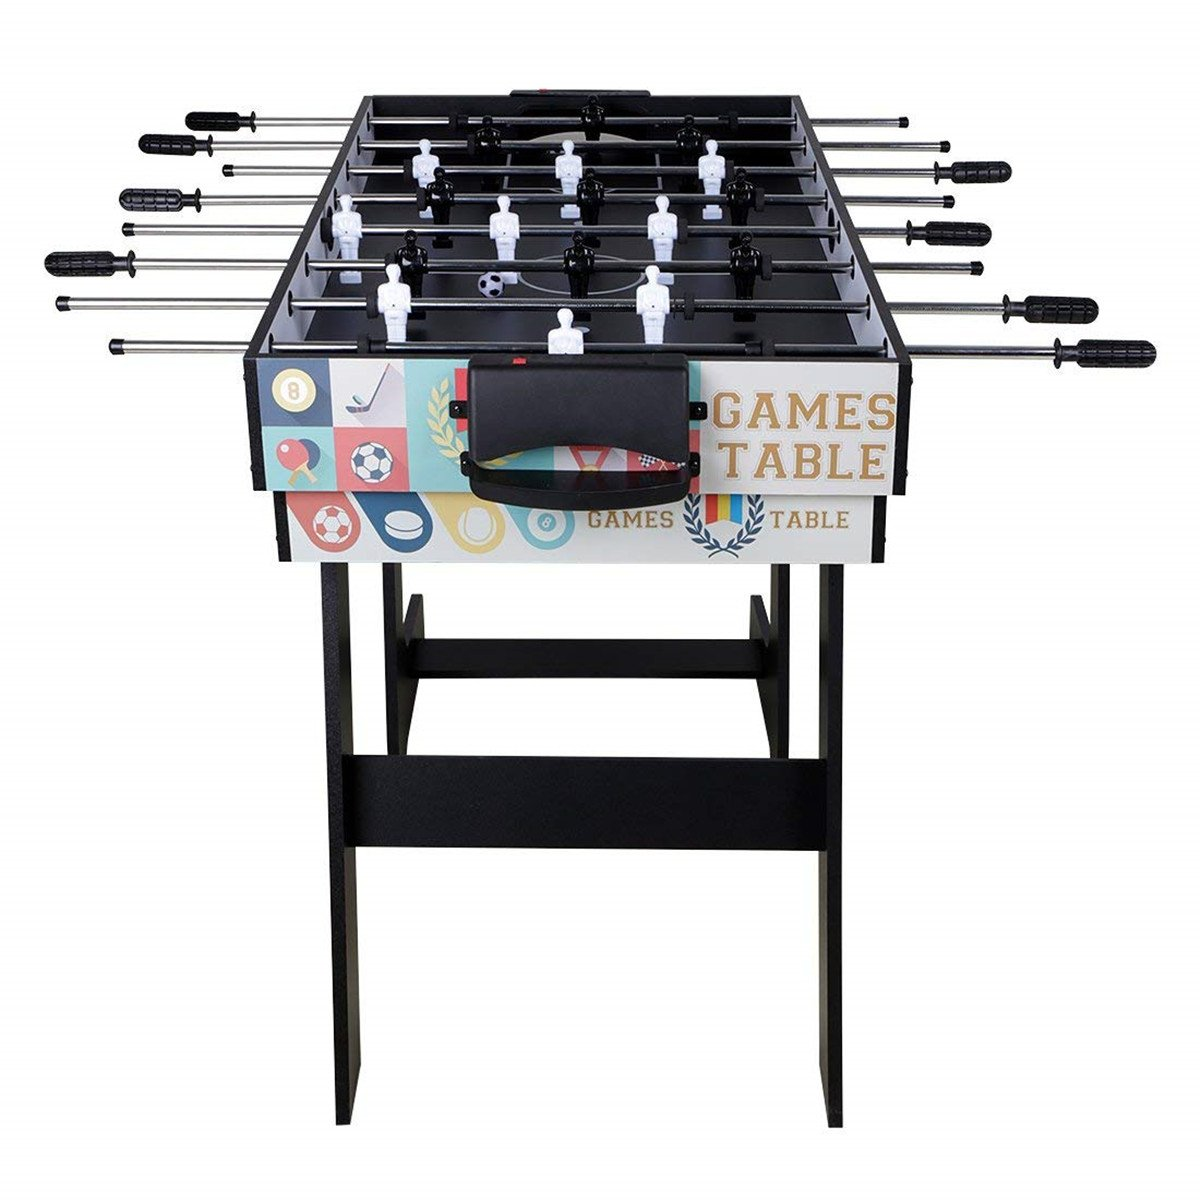 Deluxe 5 in 1 Top Game Table Folding Table-Table Tennis,Glide Hockey,Chess,Pool,Basketball Set by QYBK (Image #3)